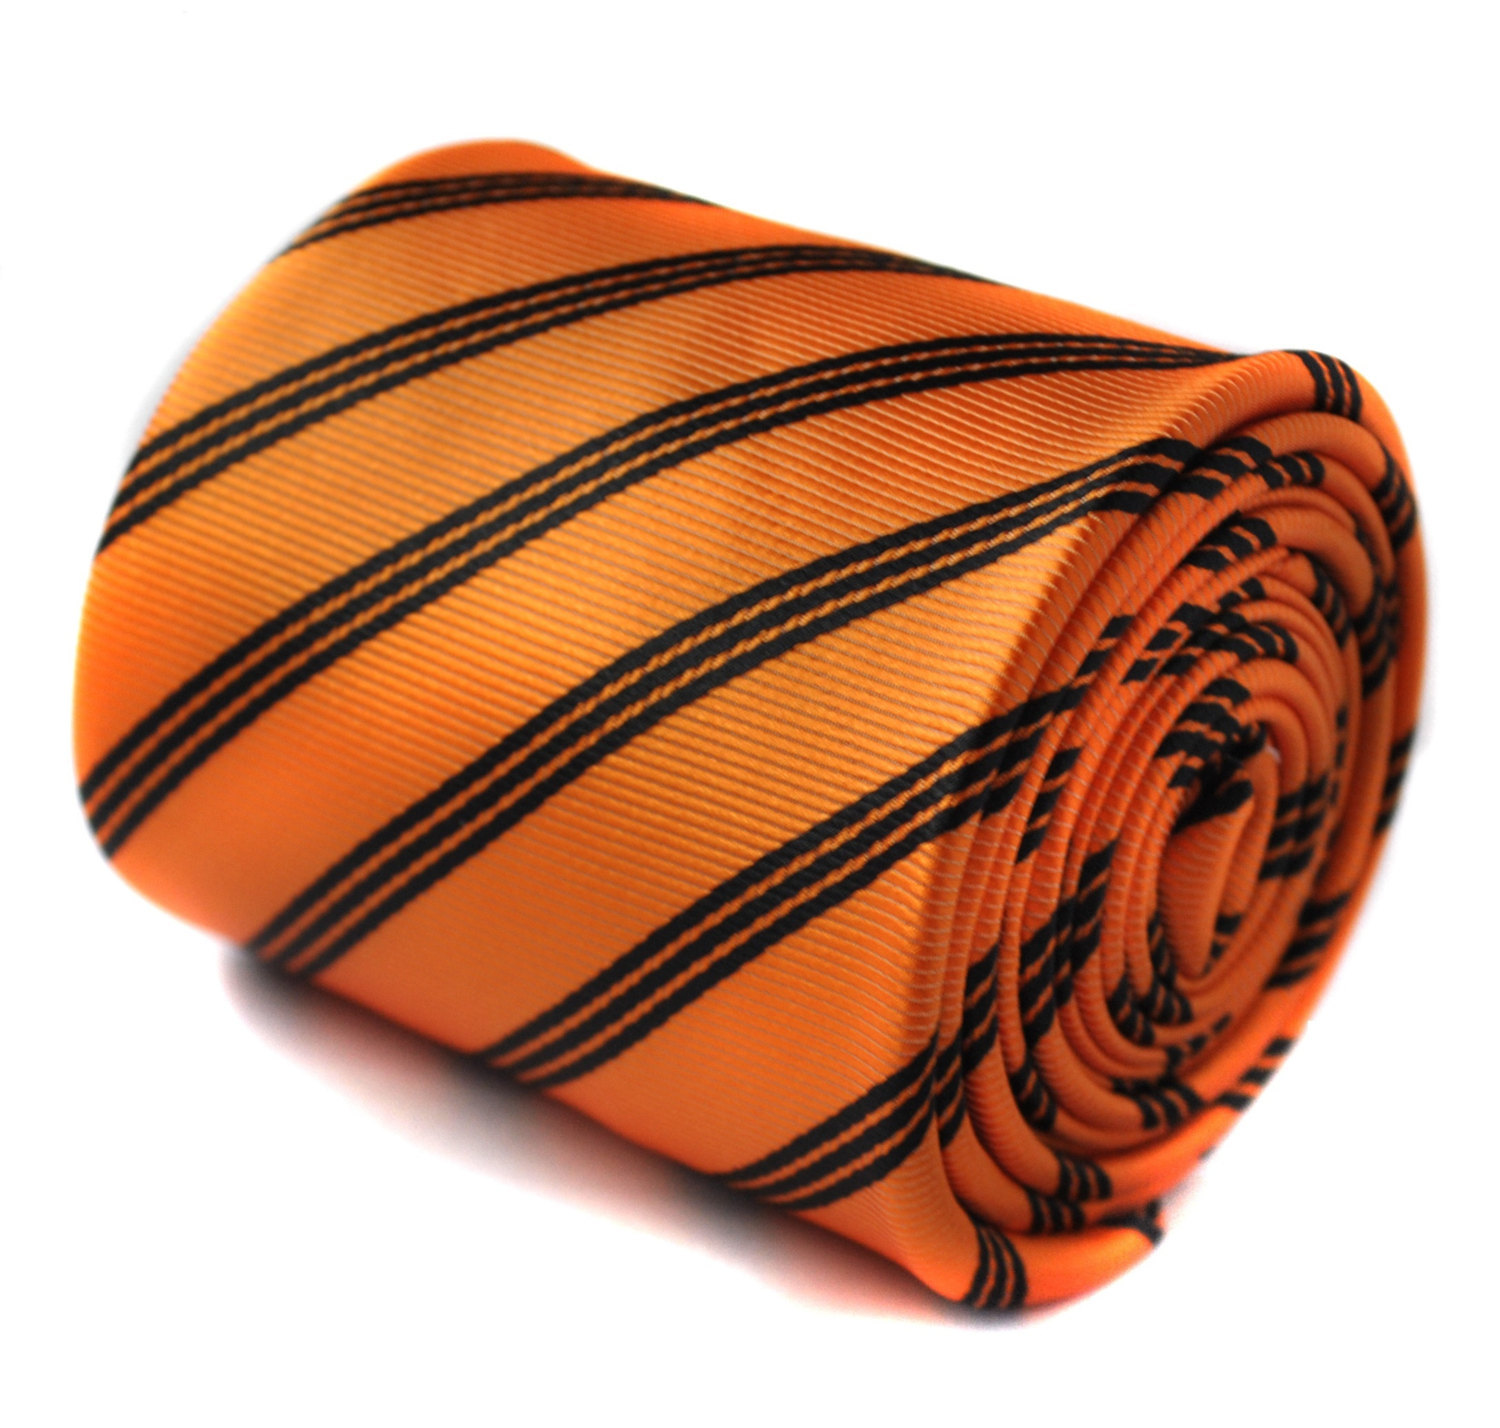 orange and black striped tie with signature floral design to the rear by Frederi